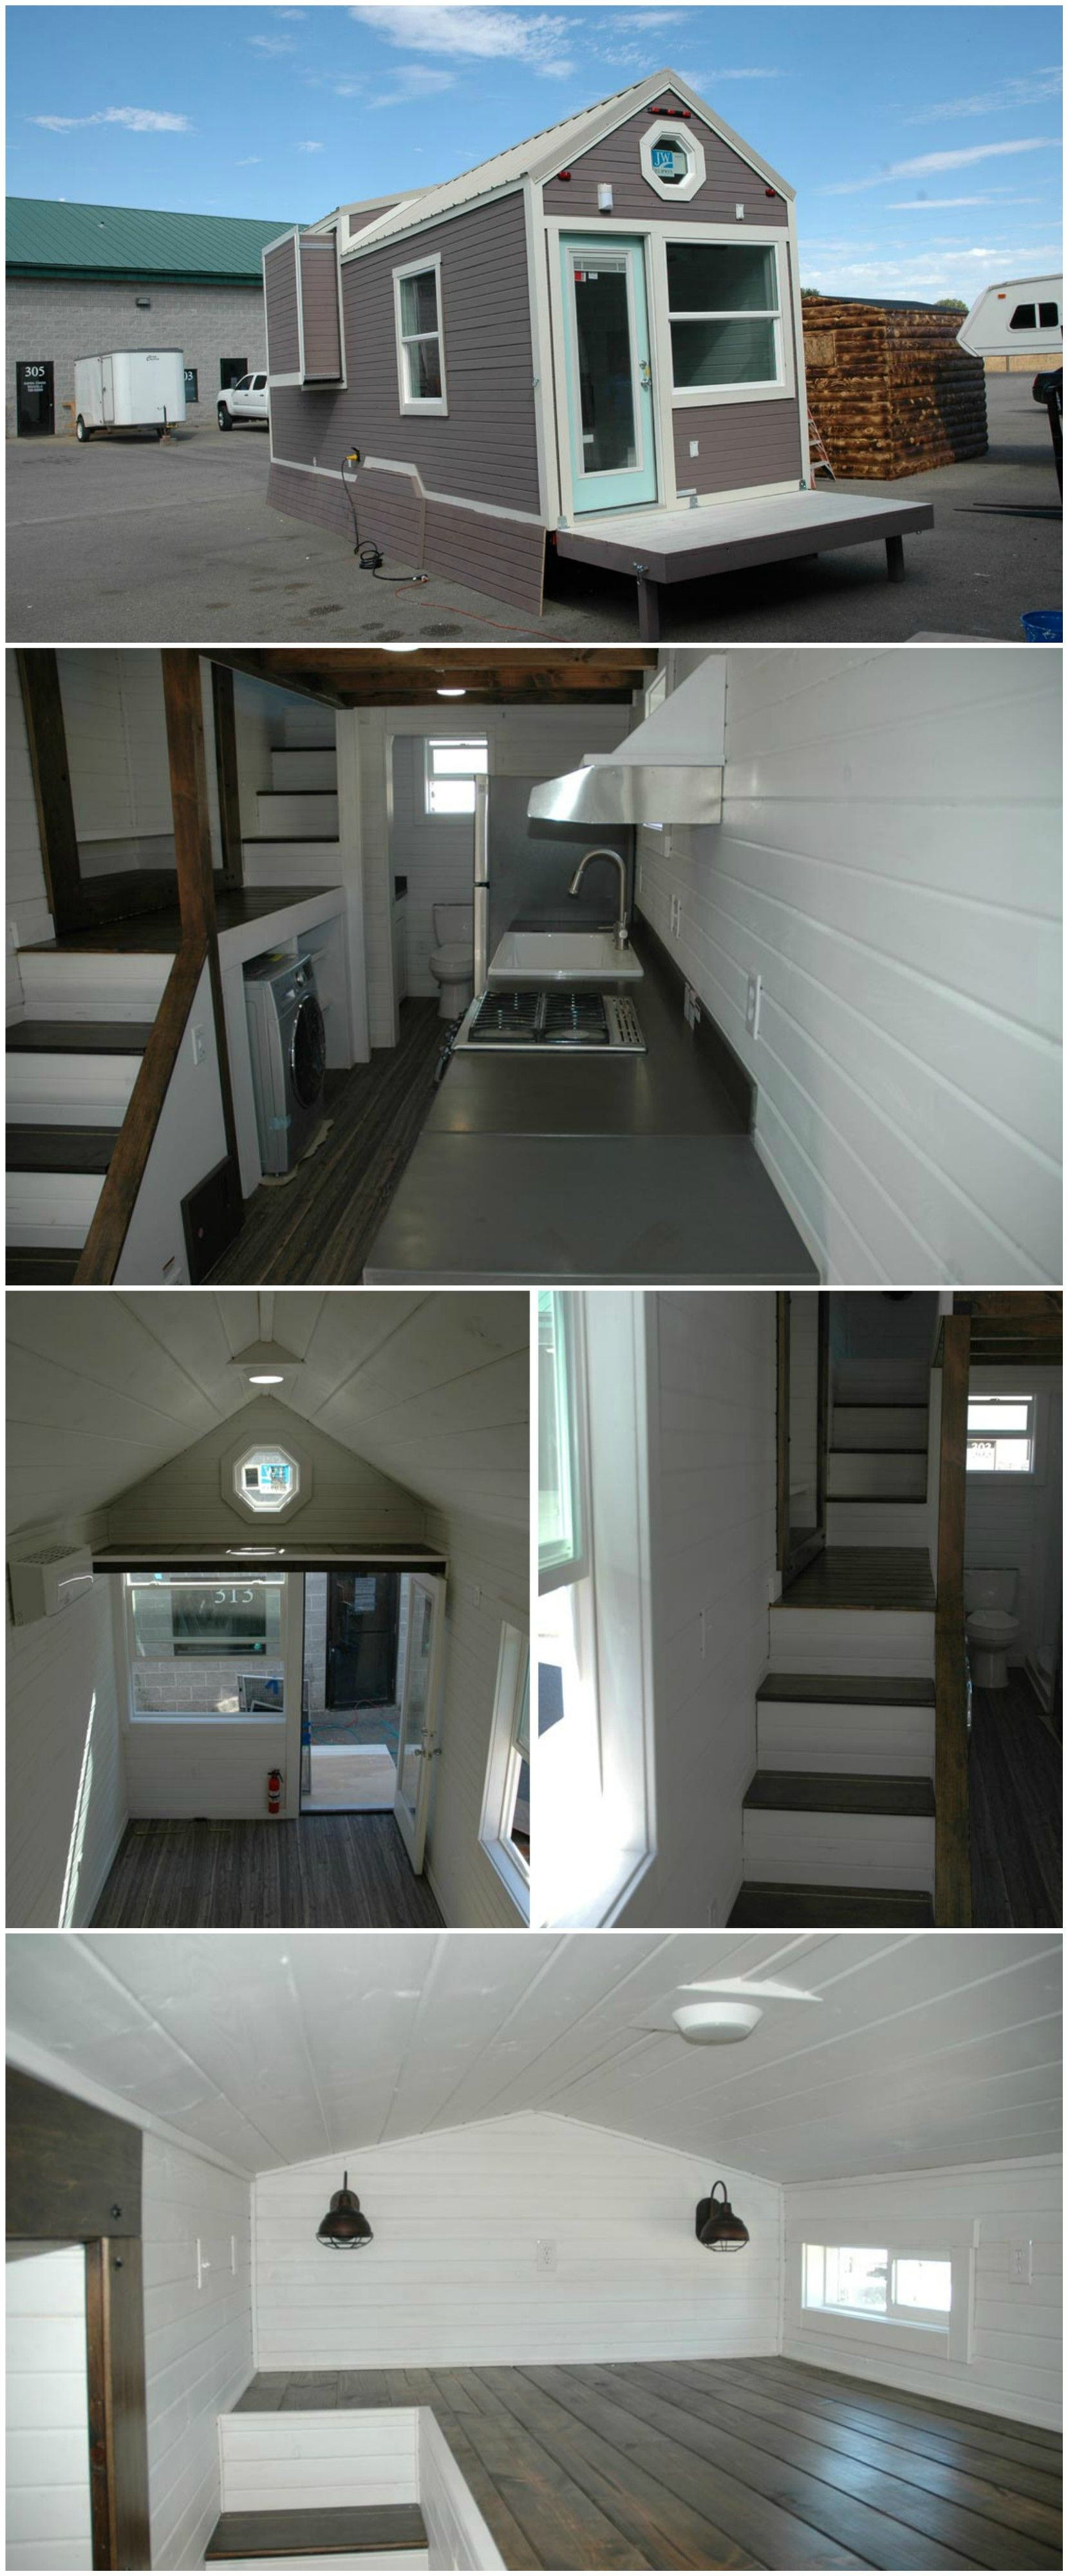 3 bedroom loft  The tiny house comes with a foot slide out closet and a  sqft